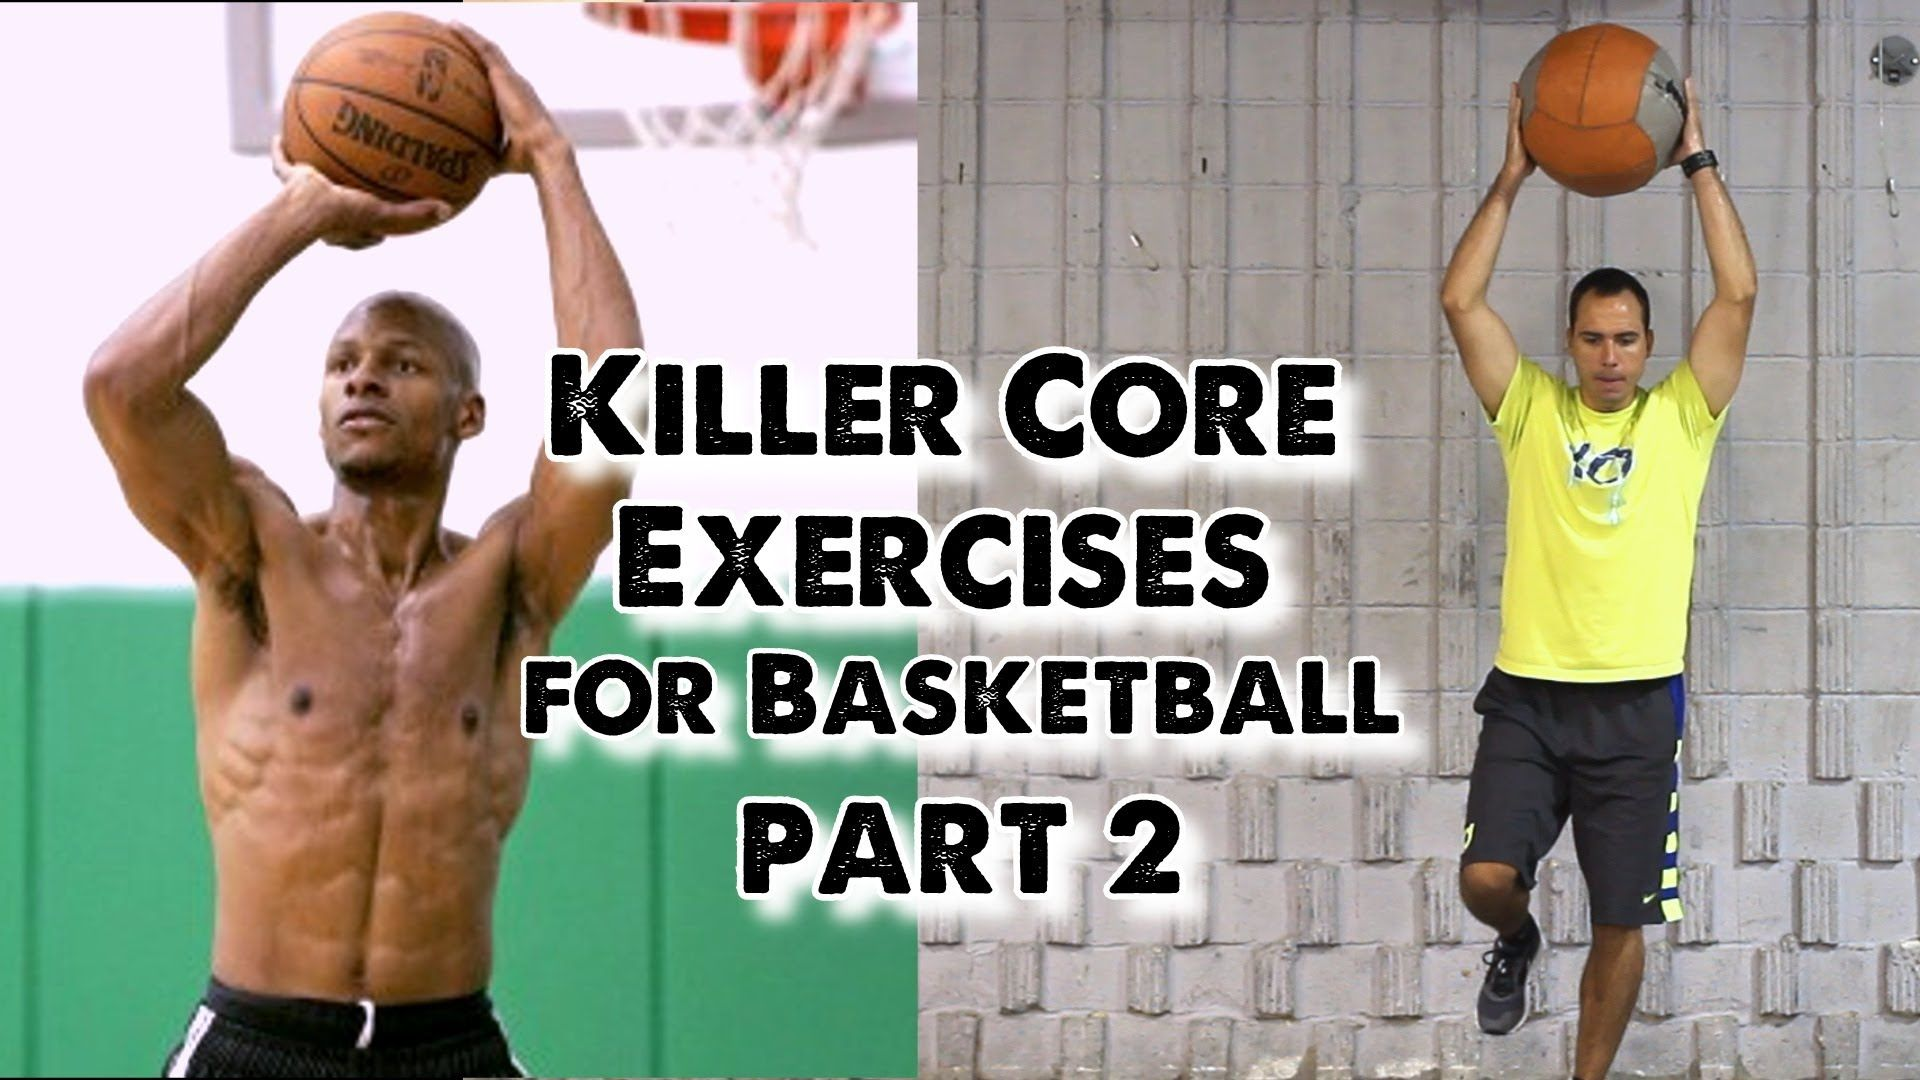 Killer Core Exercises for Basketball (Part 2) | Conditioning